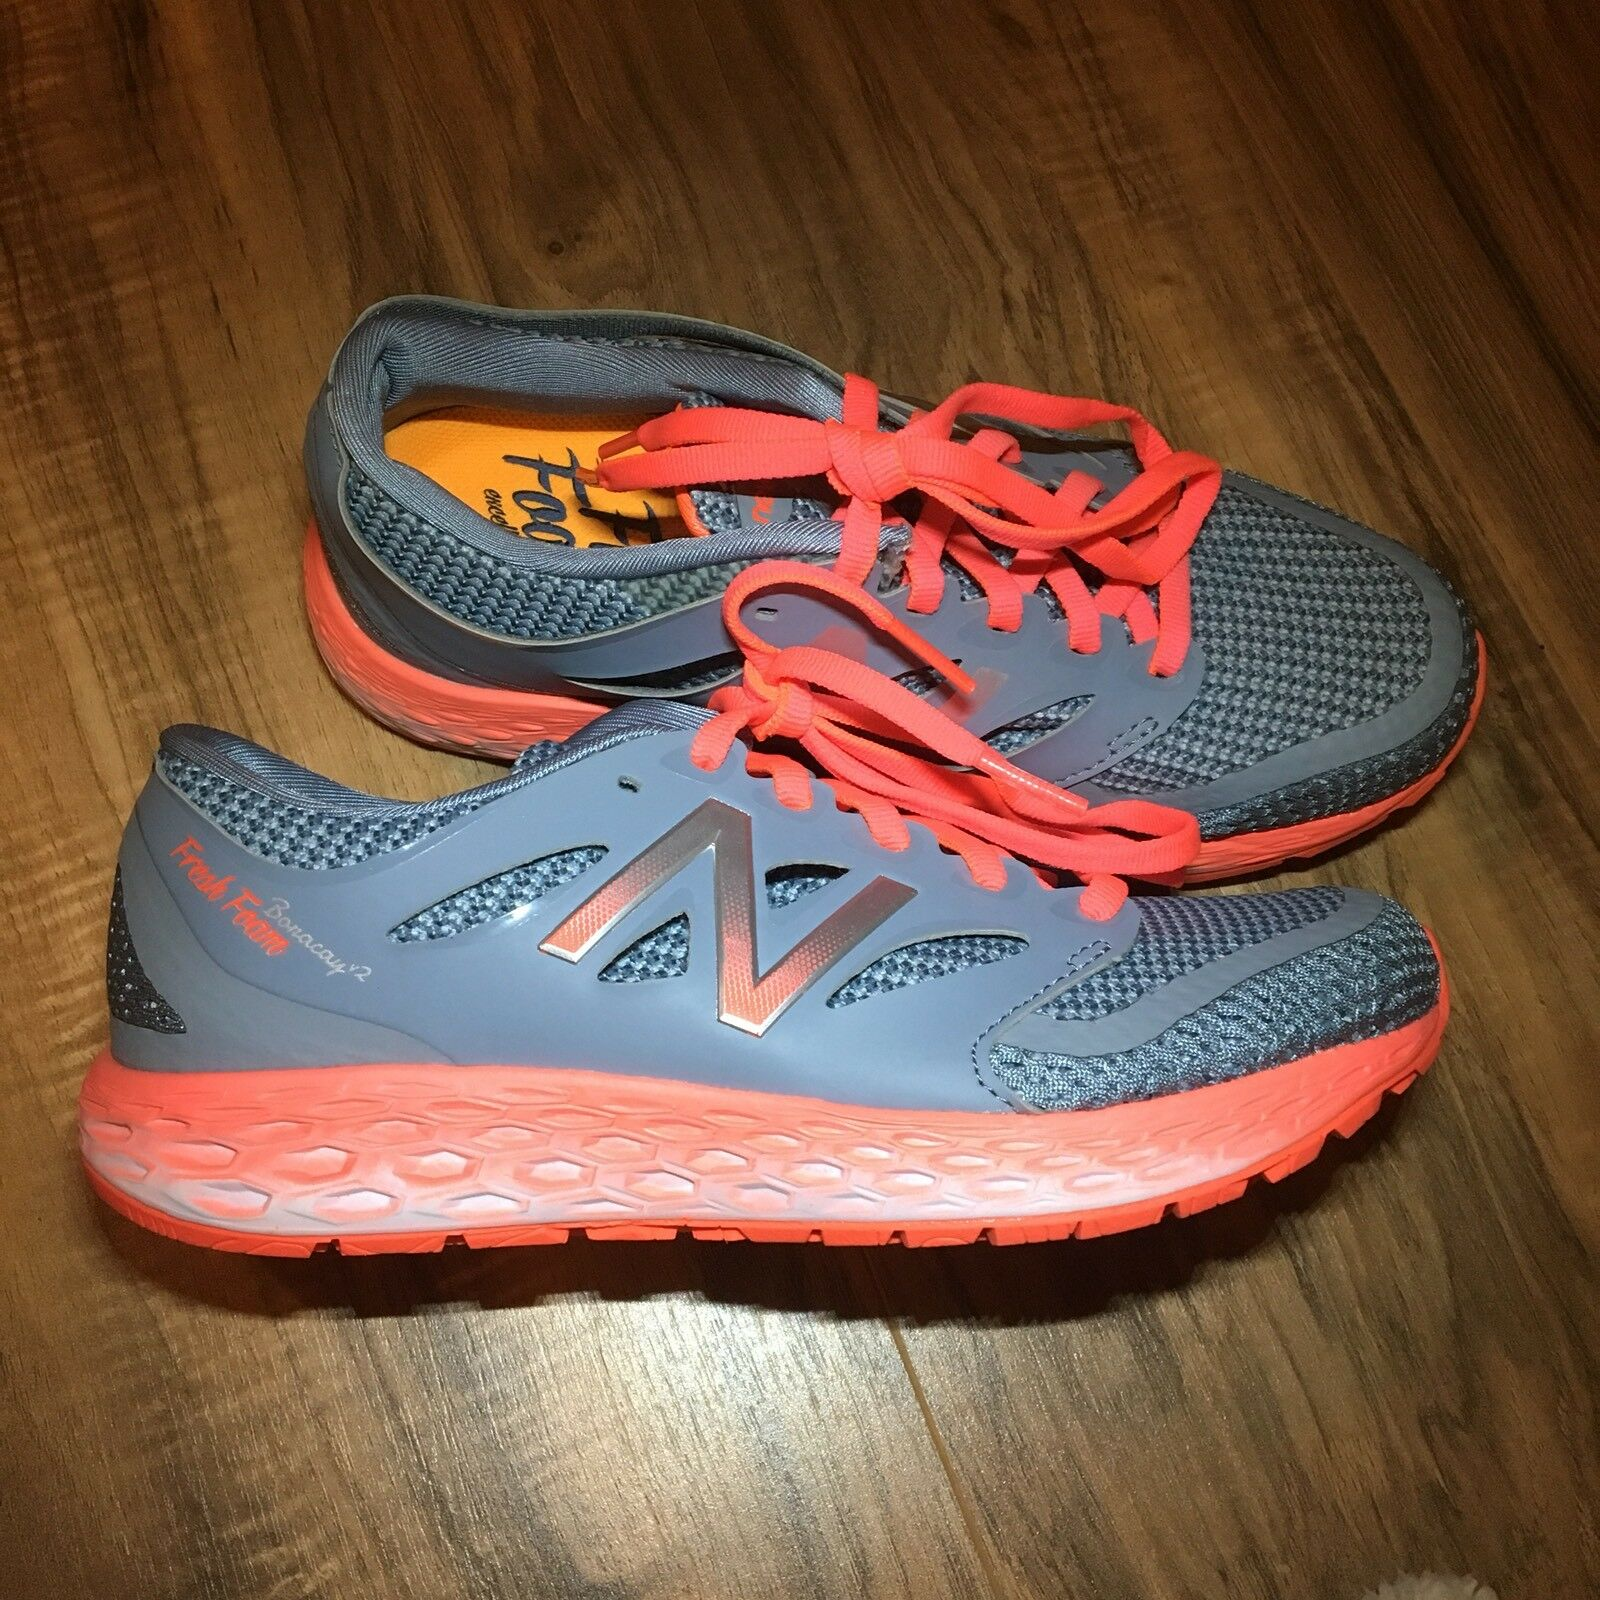 New Balance Boracay V2 Womens Running shoes Grey orange Size 5 Fresh Foam